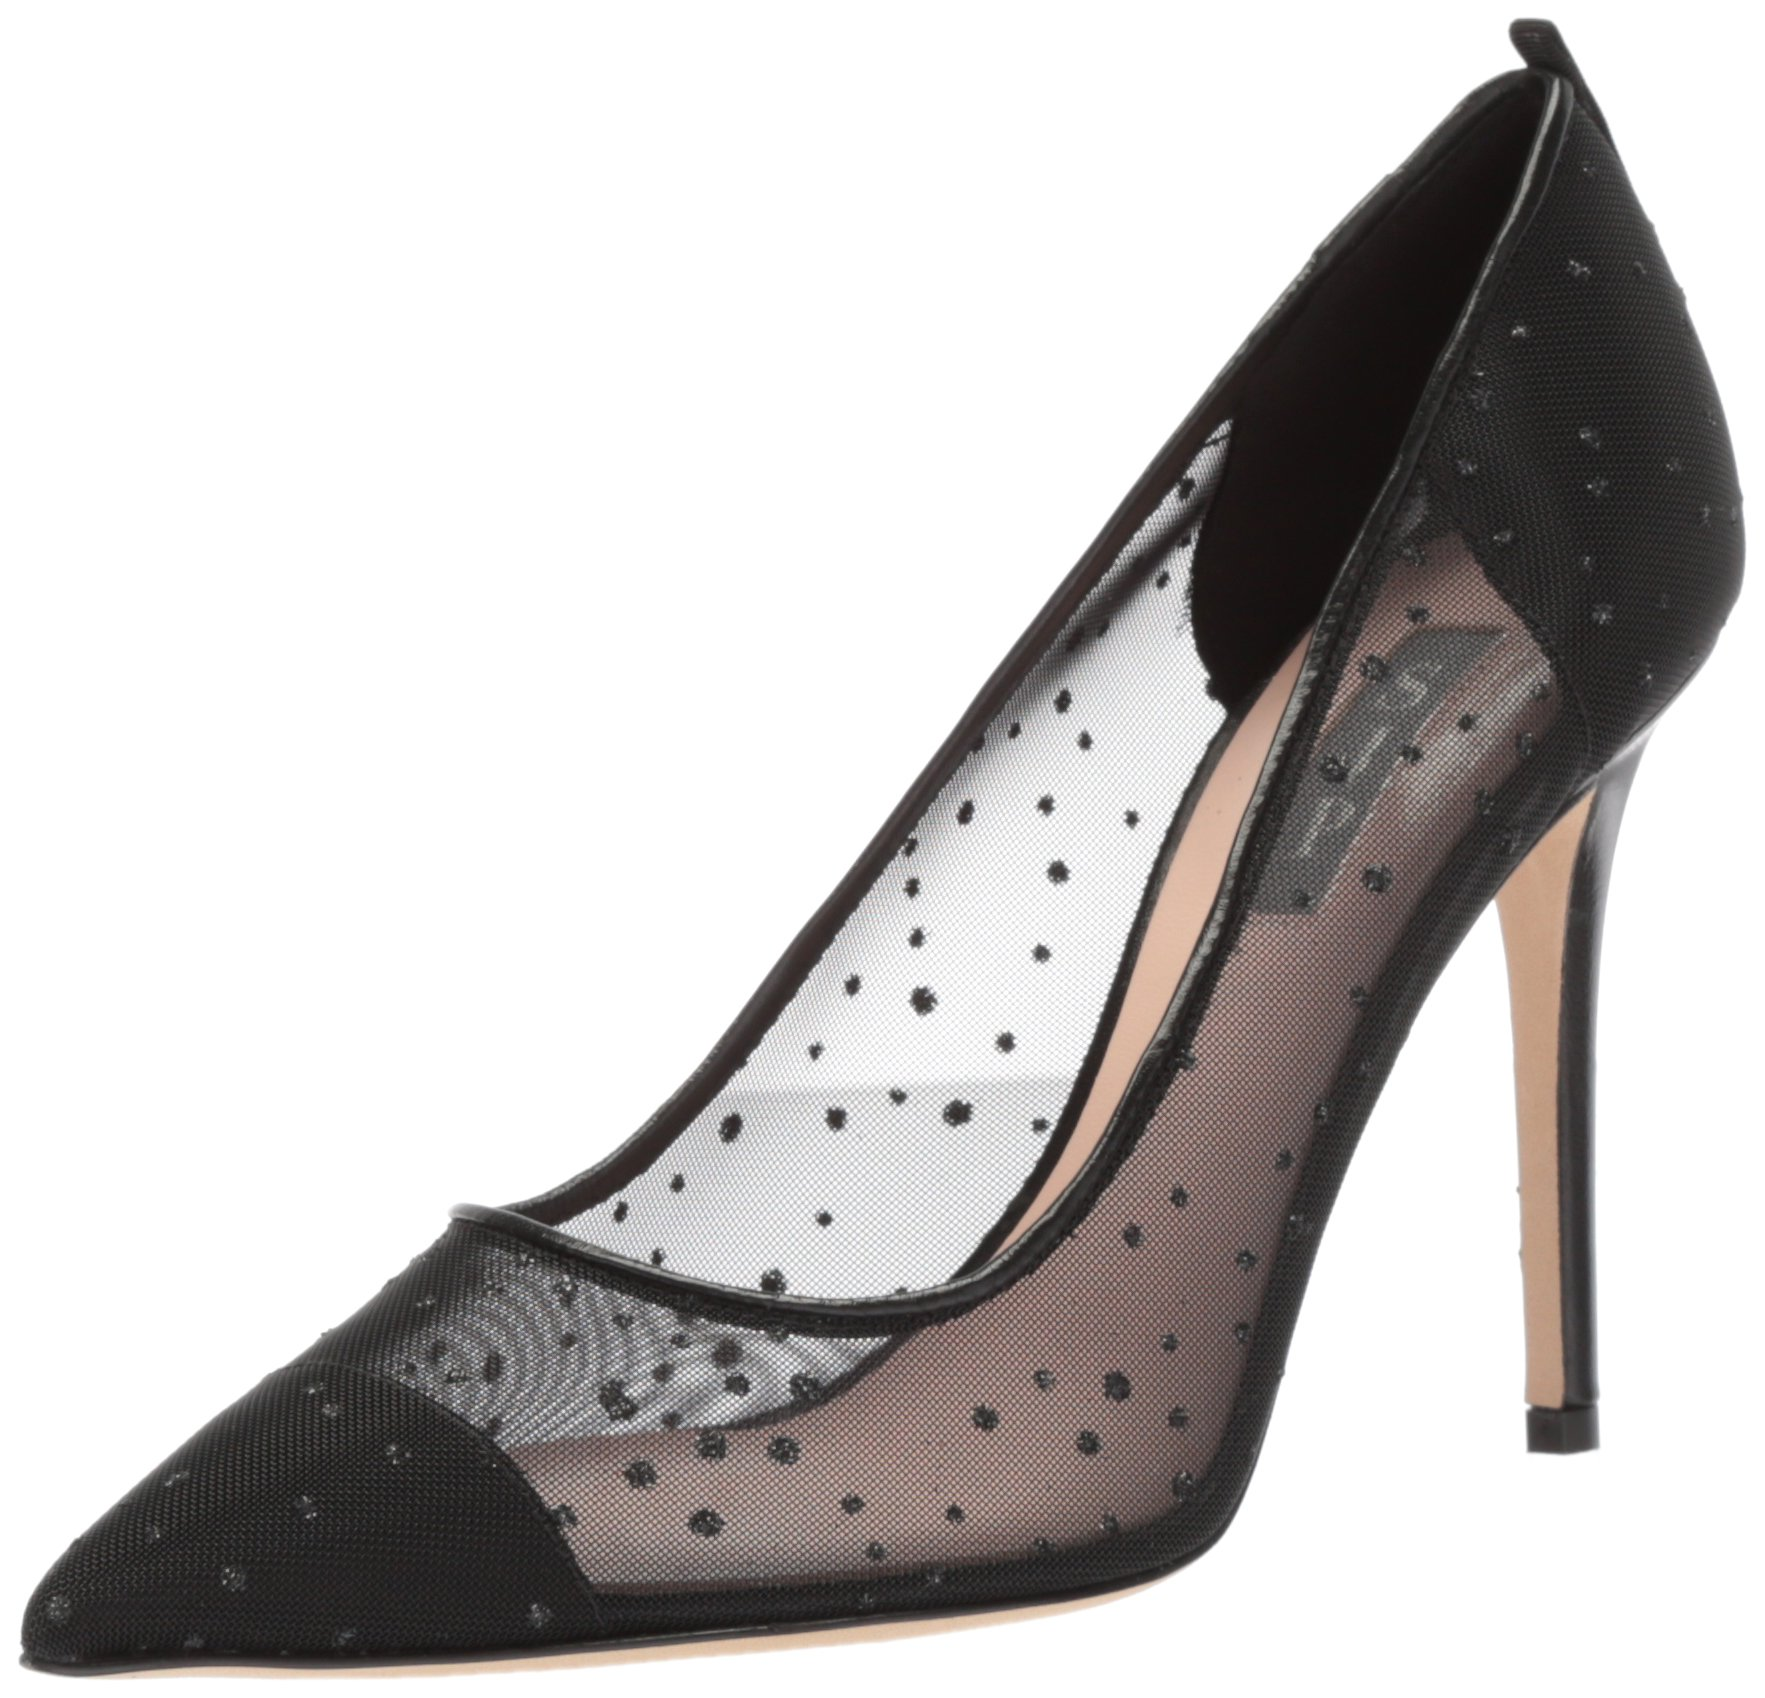 SJP by Sarah Jessica Parker Women's Glass Pump, Black Raindrops Fabric, 39 B EU (8.5 US) by SJP by Sarah Jessica Parker